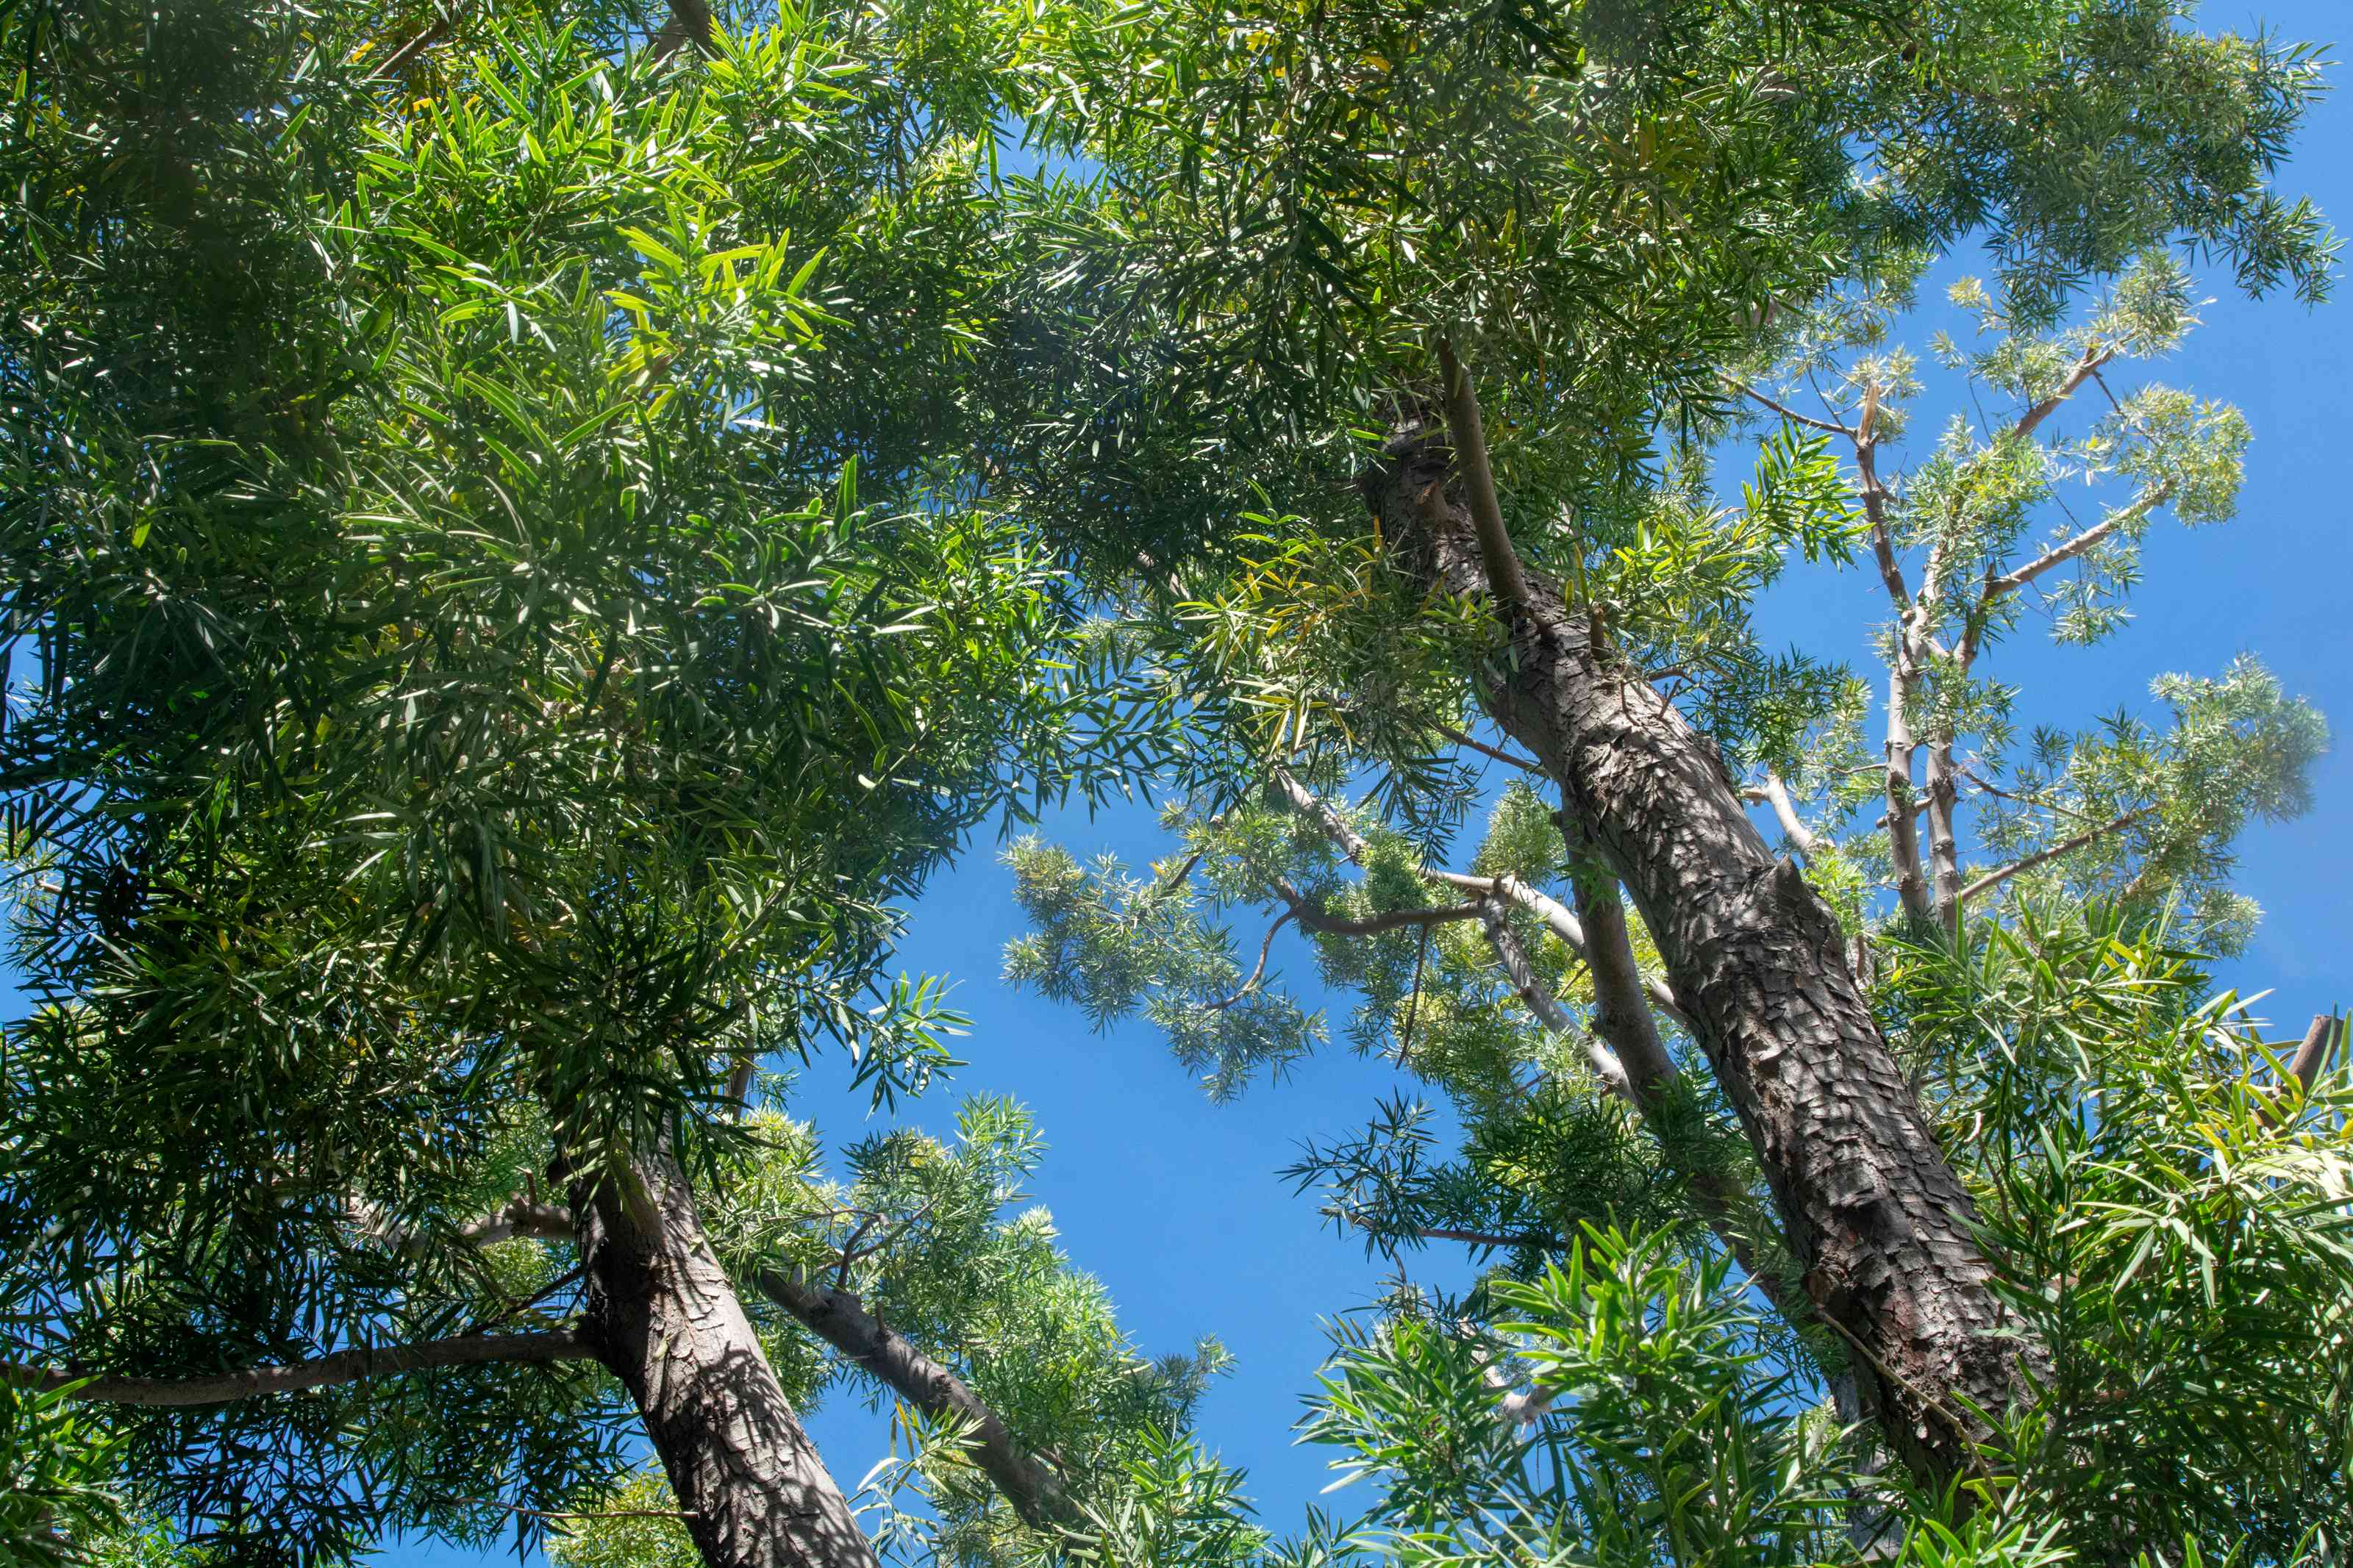 African fern pine tree with tall trunks and sprawling fern-like branches against blue sky